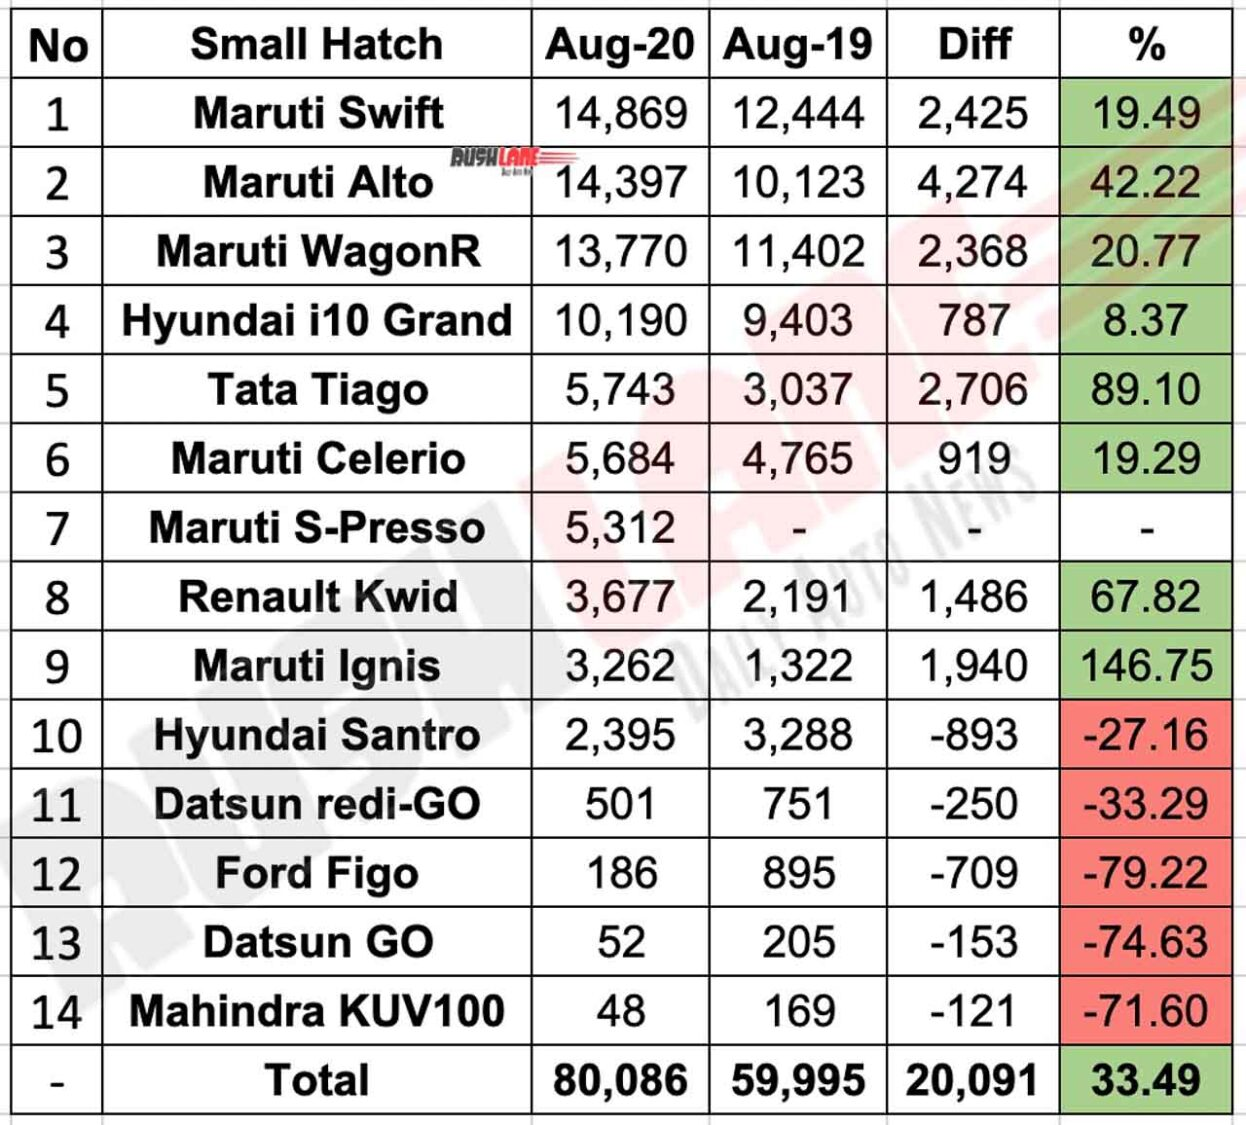 Small hatchback sales Aug 2020